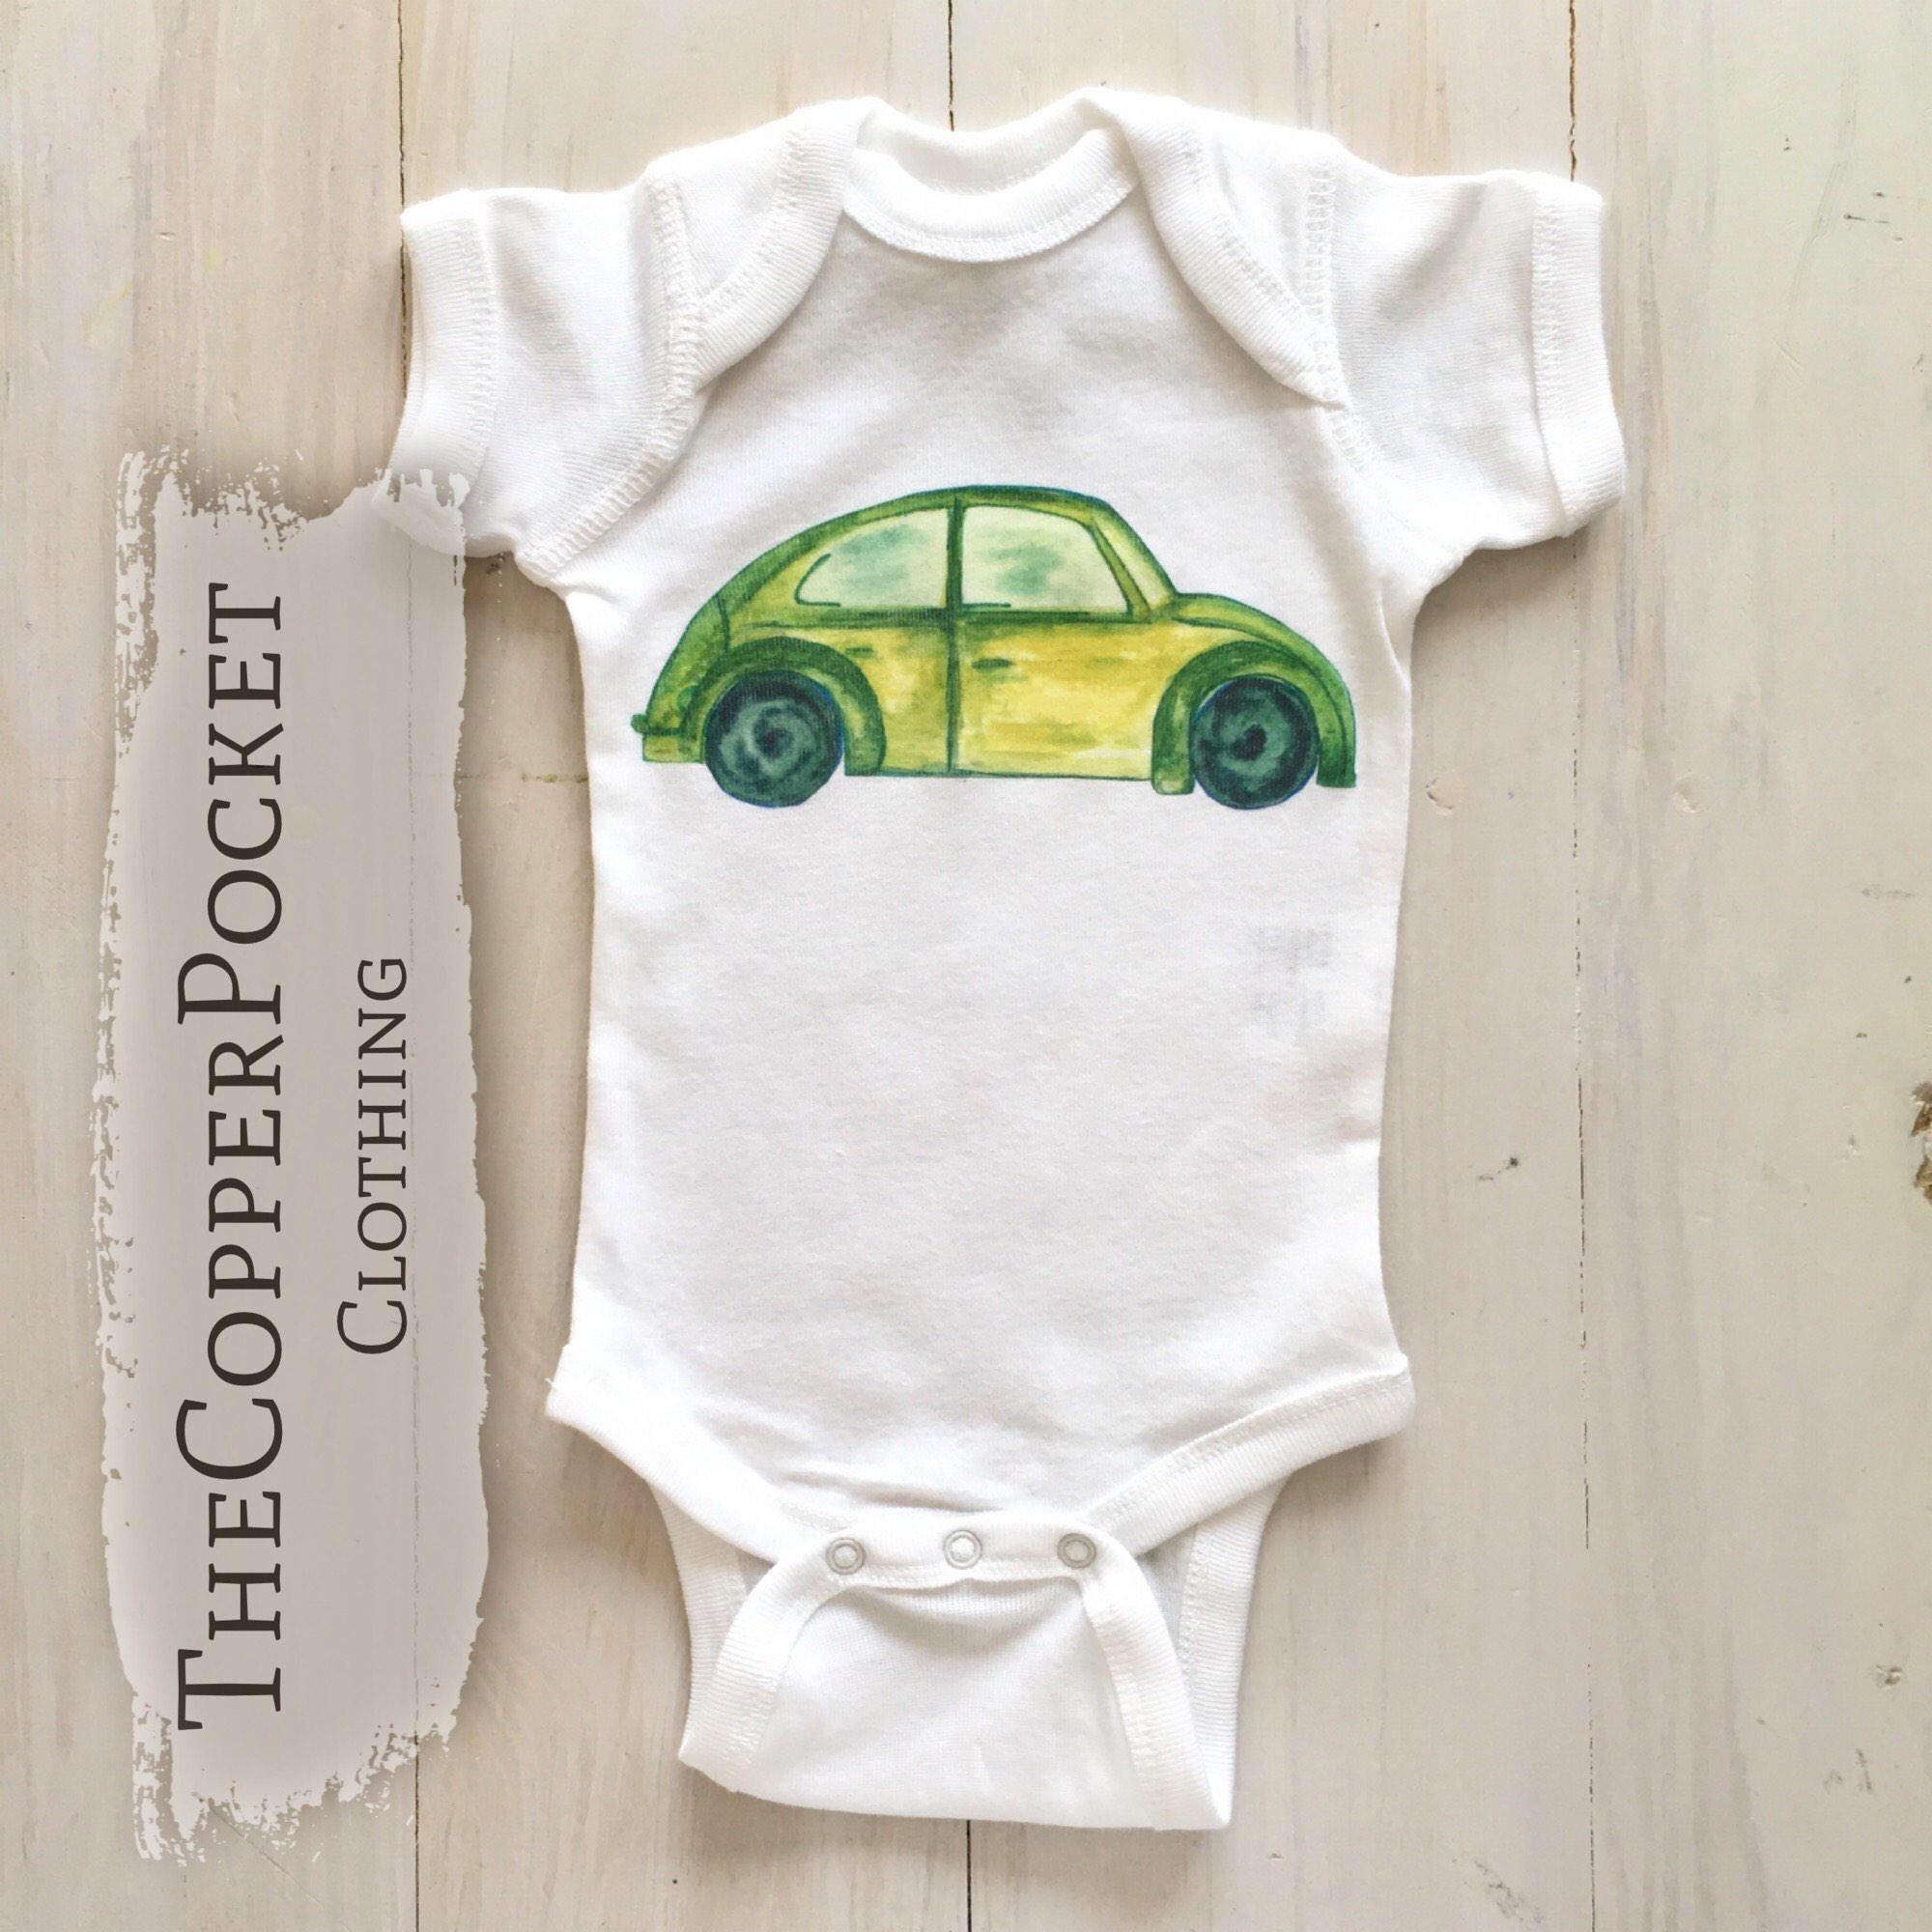 Cute funny unique baby clothes clothing for babies Car baby bodysuit